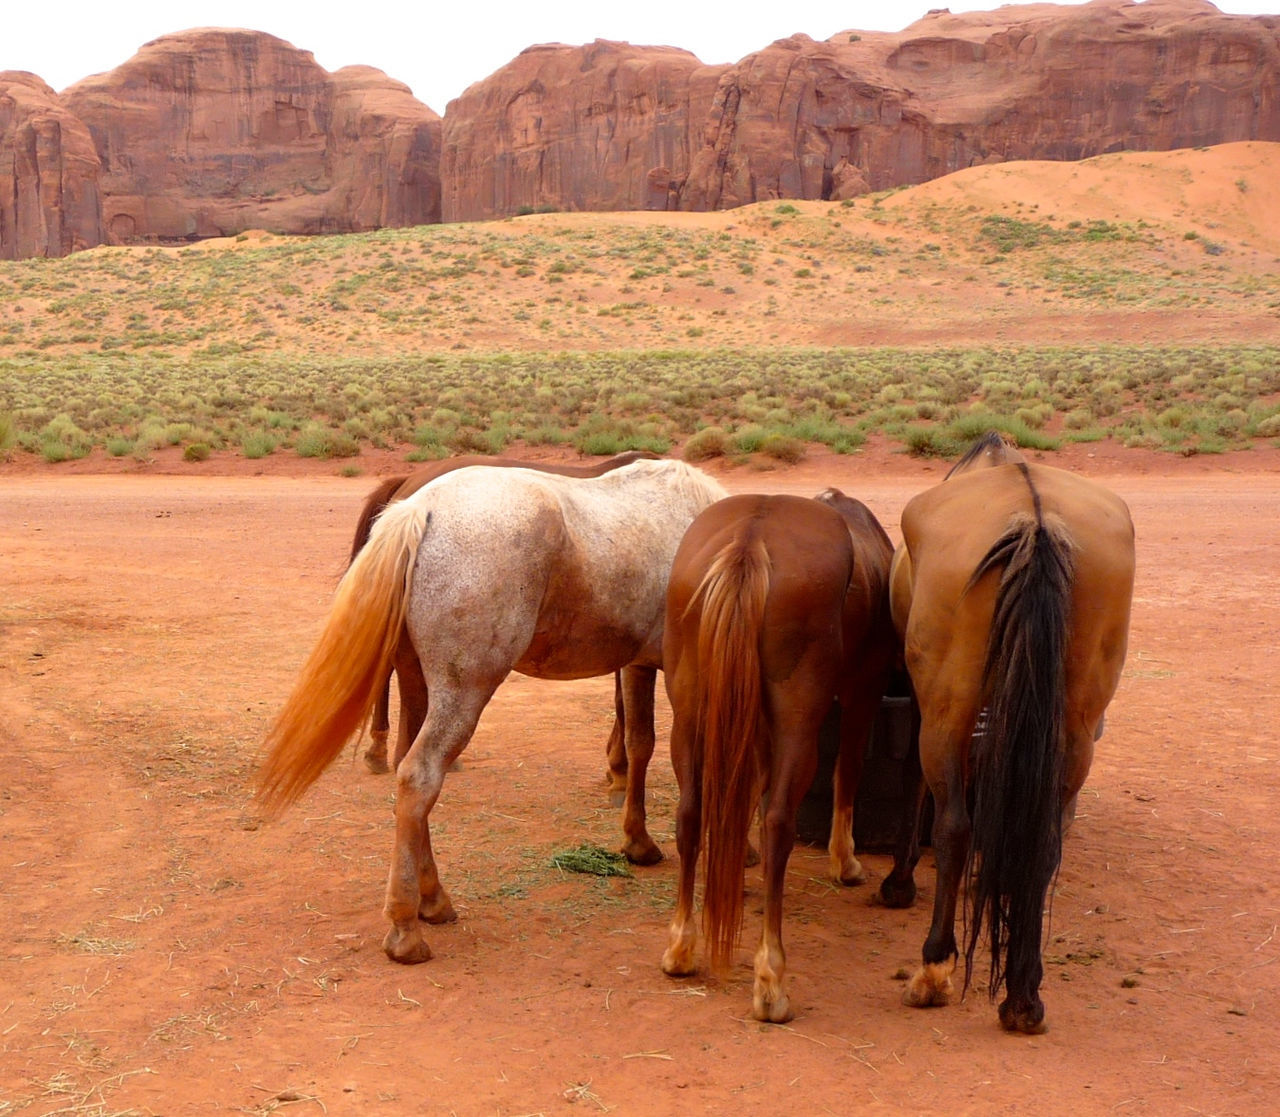 Animal Themes Arizona Brown Desert Domestic Animals Grazing Herbivorous Horse Back Riding Horses Horses Eating Indians  Landscape Livestock Mammal National Park Nature Navajo Navajo Reservation No People Outdoors Traditional Tranquility Travel Photography